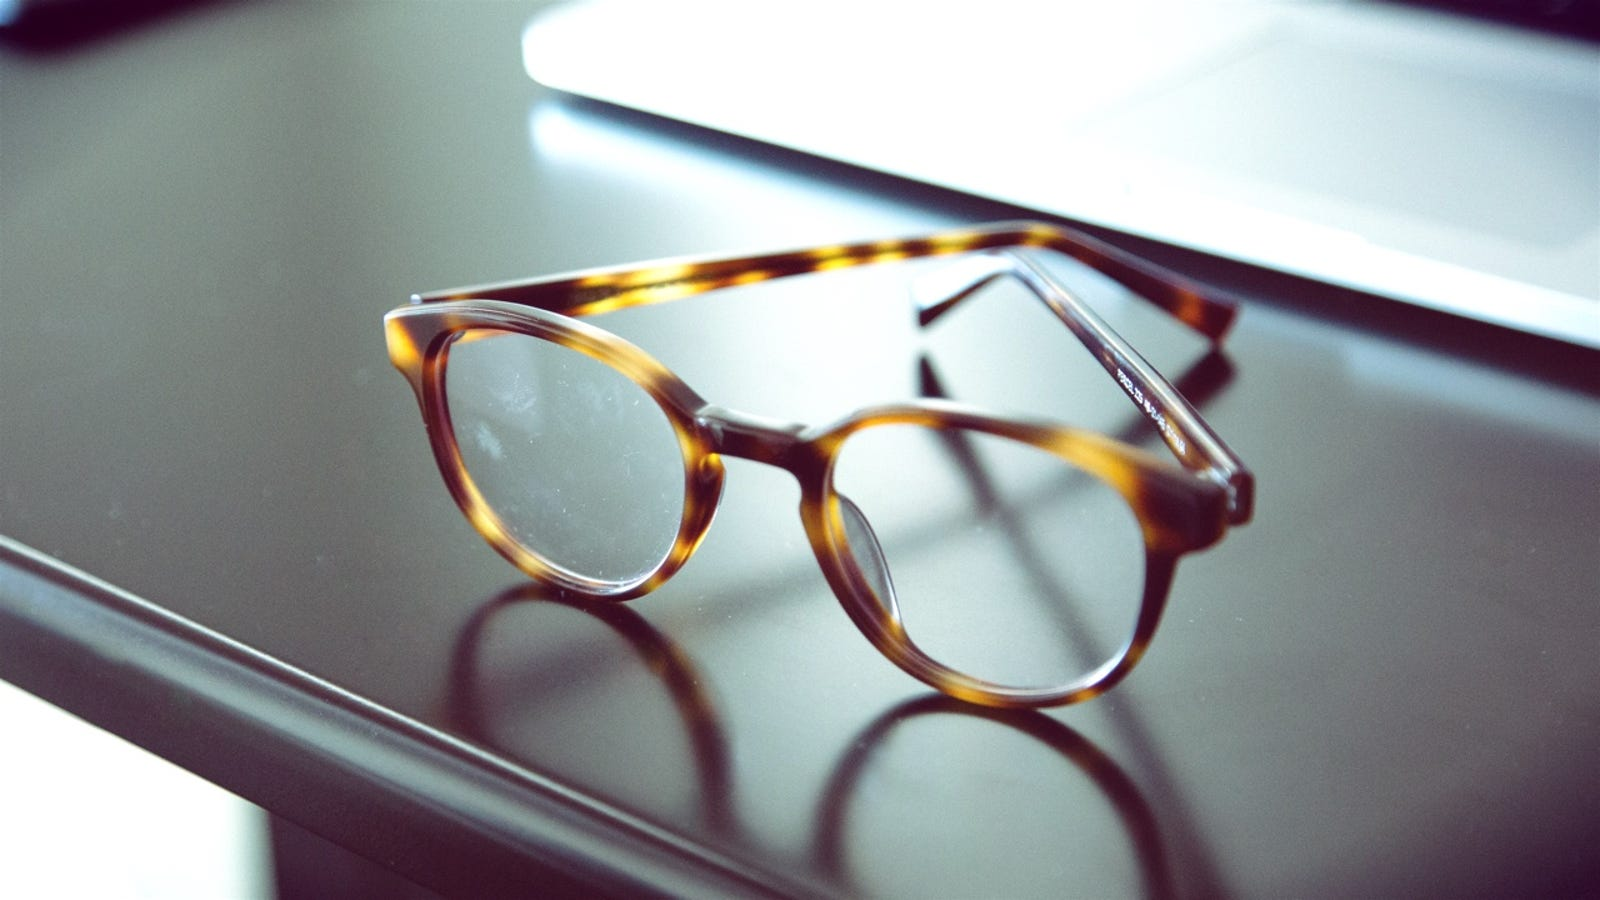 ef5ba049d43 What You Need to Know When Buying Glasses Online